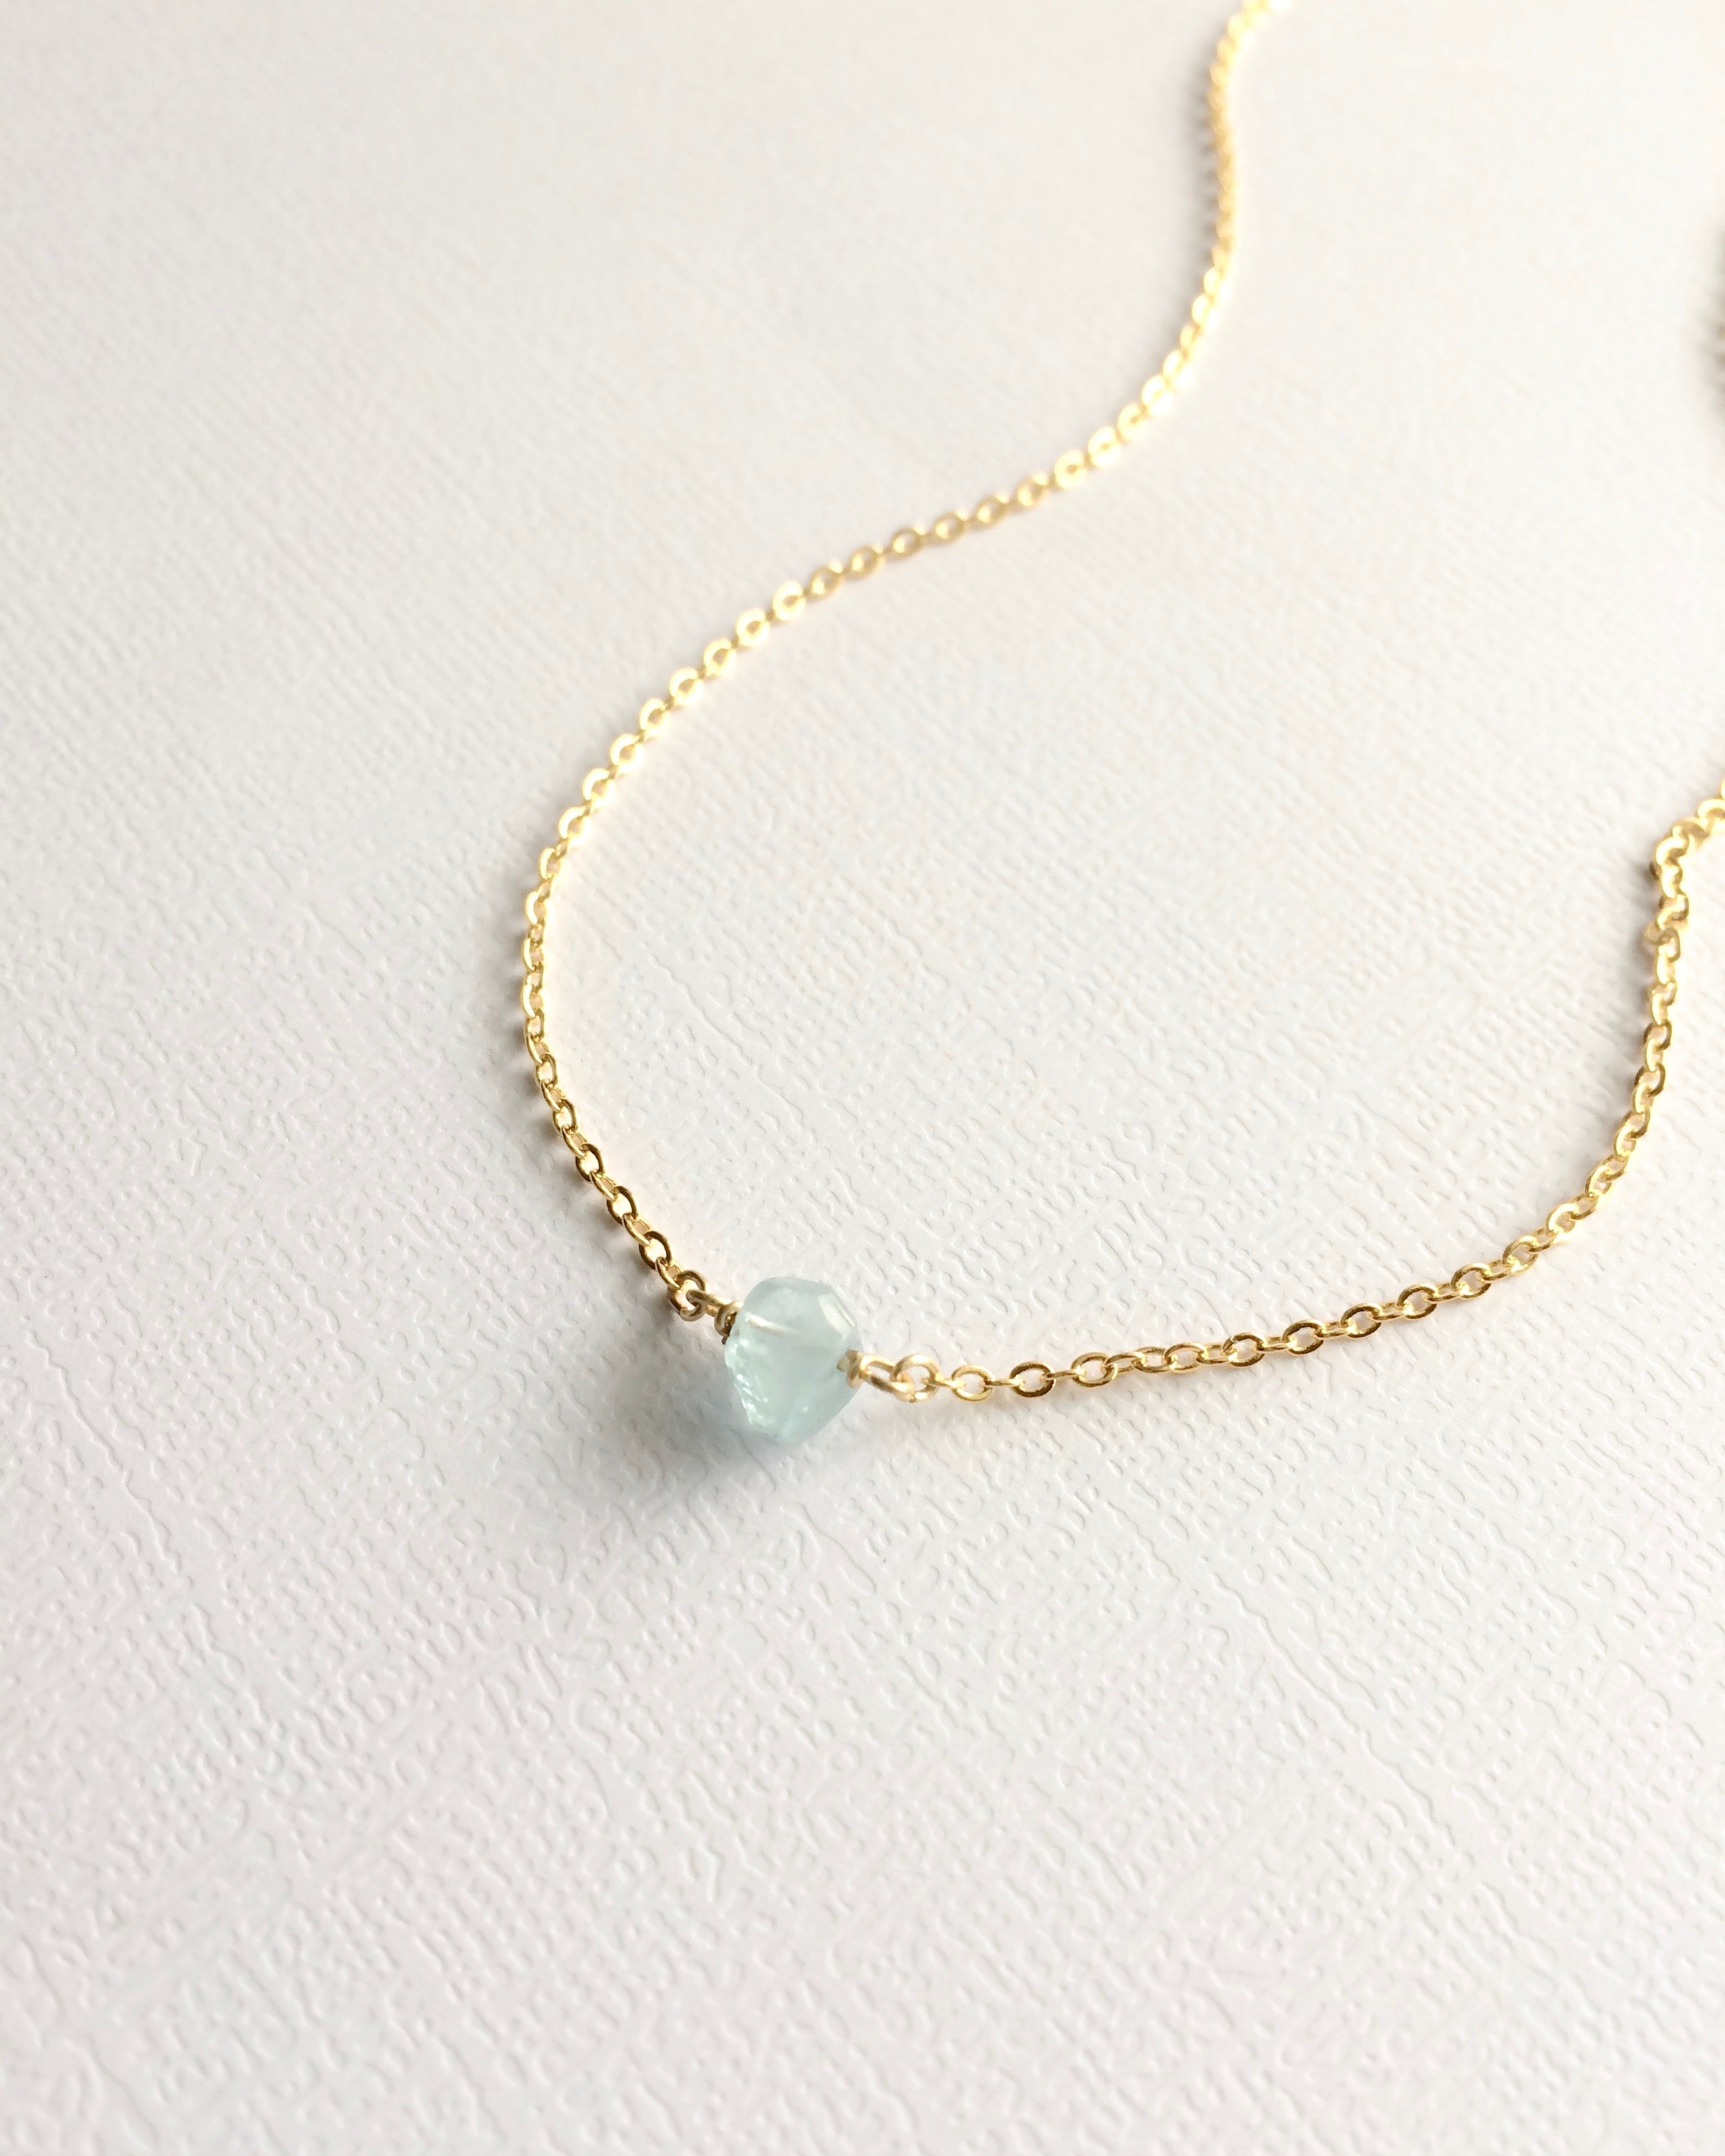 Dainty Aquamarine Minimalist Gemstone Necklace | IB Jewelry